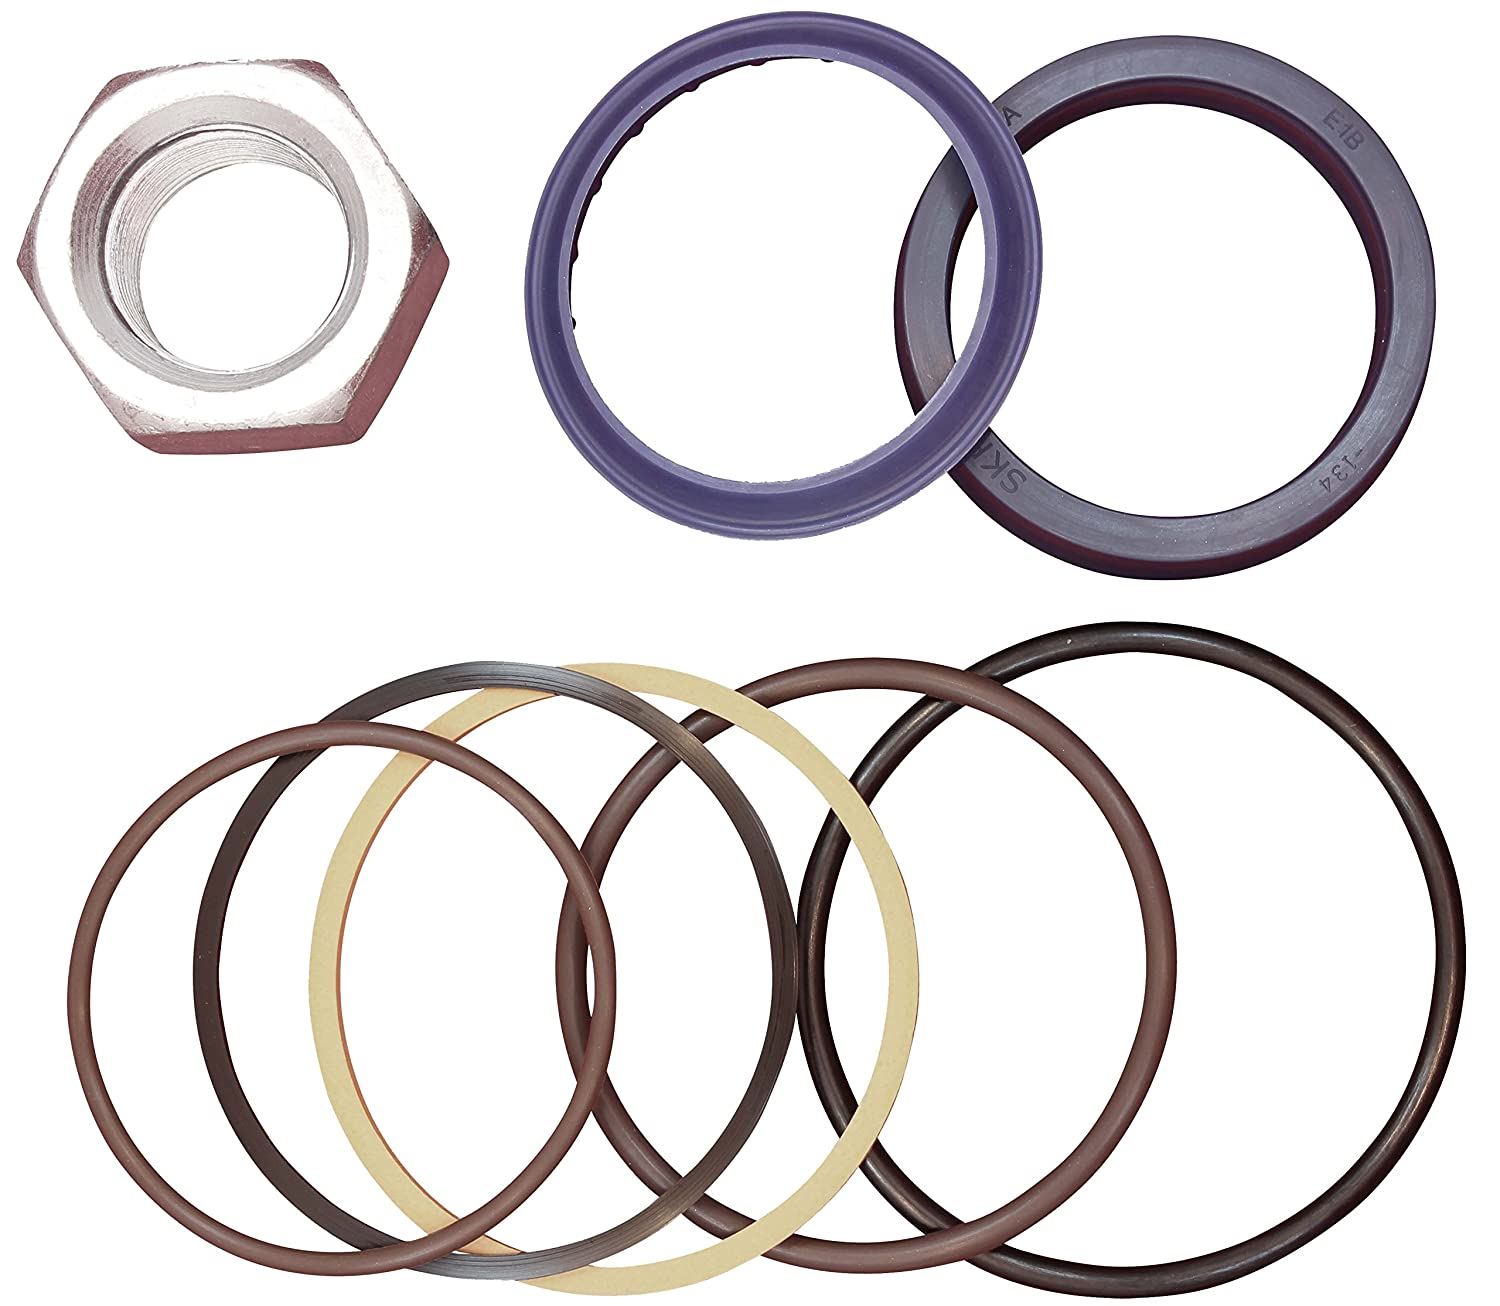 BOBCAT 6803312 HYDRAULIC CYLINDER SEAL KIT 863 TORNADO HEAVY EQUIPMENT PARTS